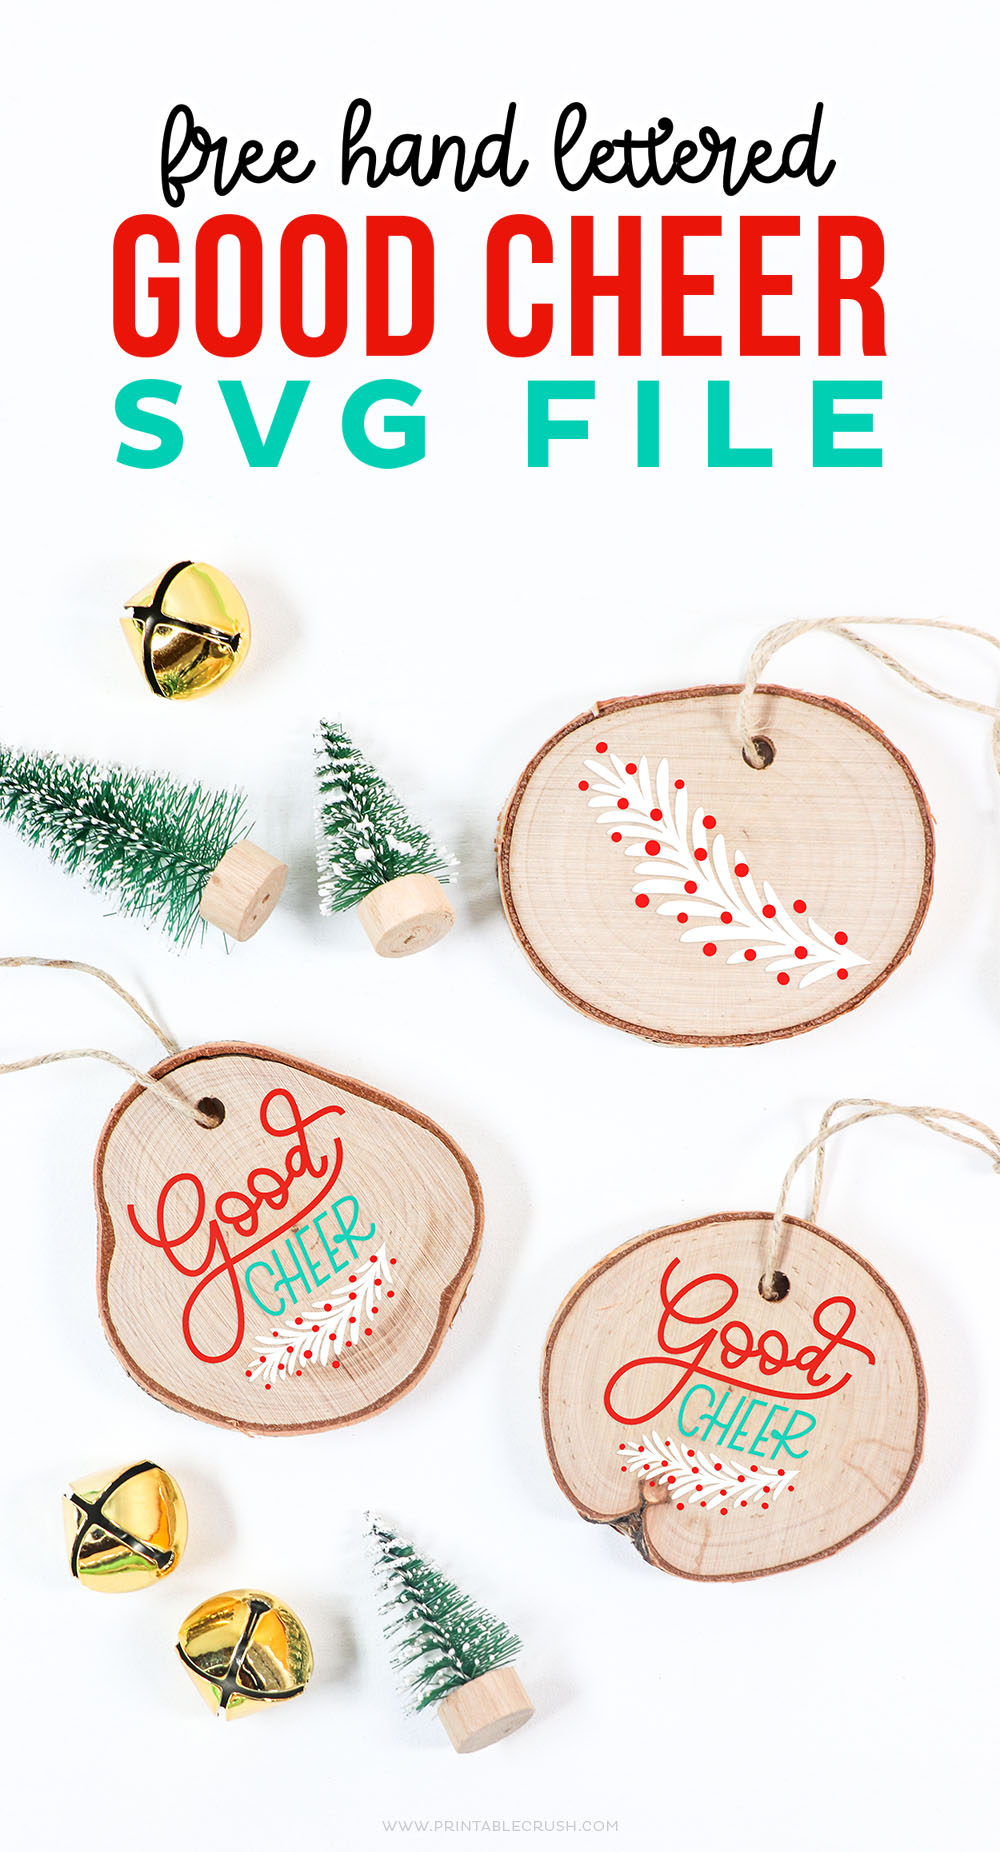 Free Hand Lettered Christmas SVG File - Wood Ornament DIY - DIY Wood Ornament with Cricut Machine - Printable Crush